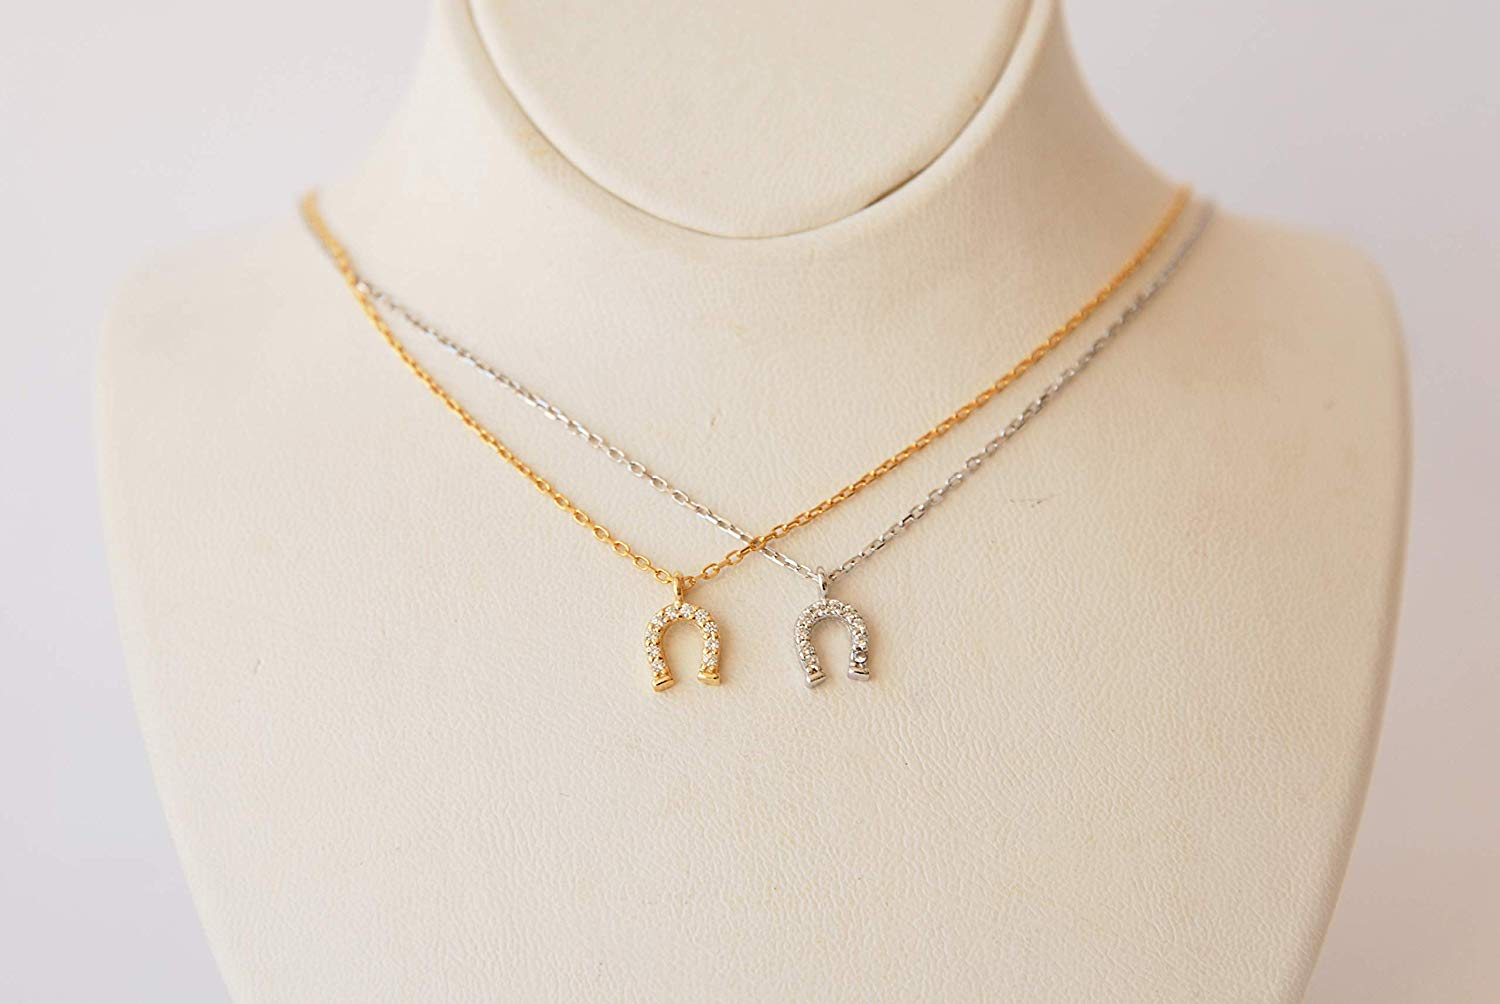 Jewels Obsession Horseshoe With Horse Necklace 14K Rose Gold-plated 925 Silver Horseshoe With Horse Pendant with 16 Necklace